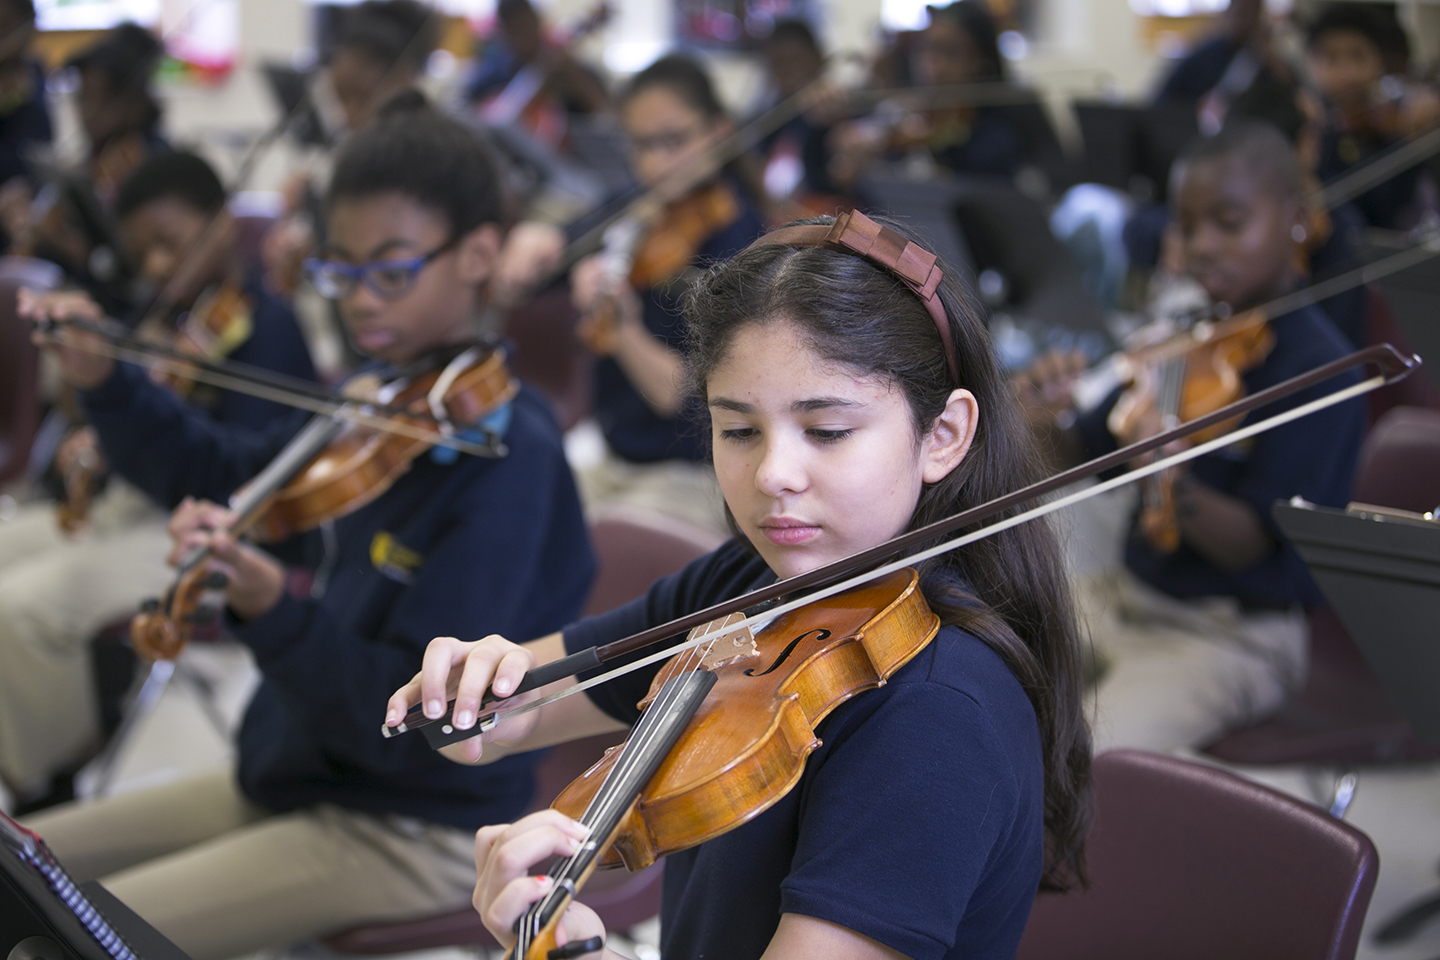 The photo shows a student violin performer.